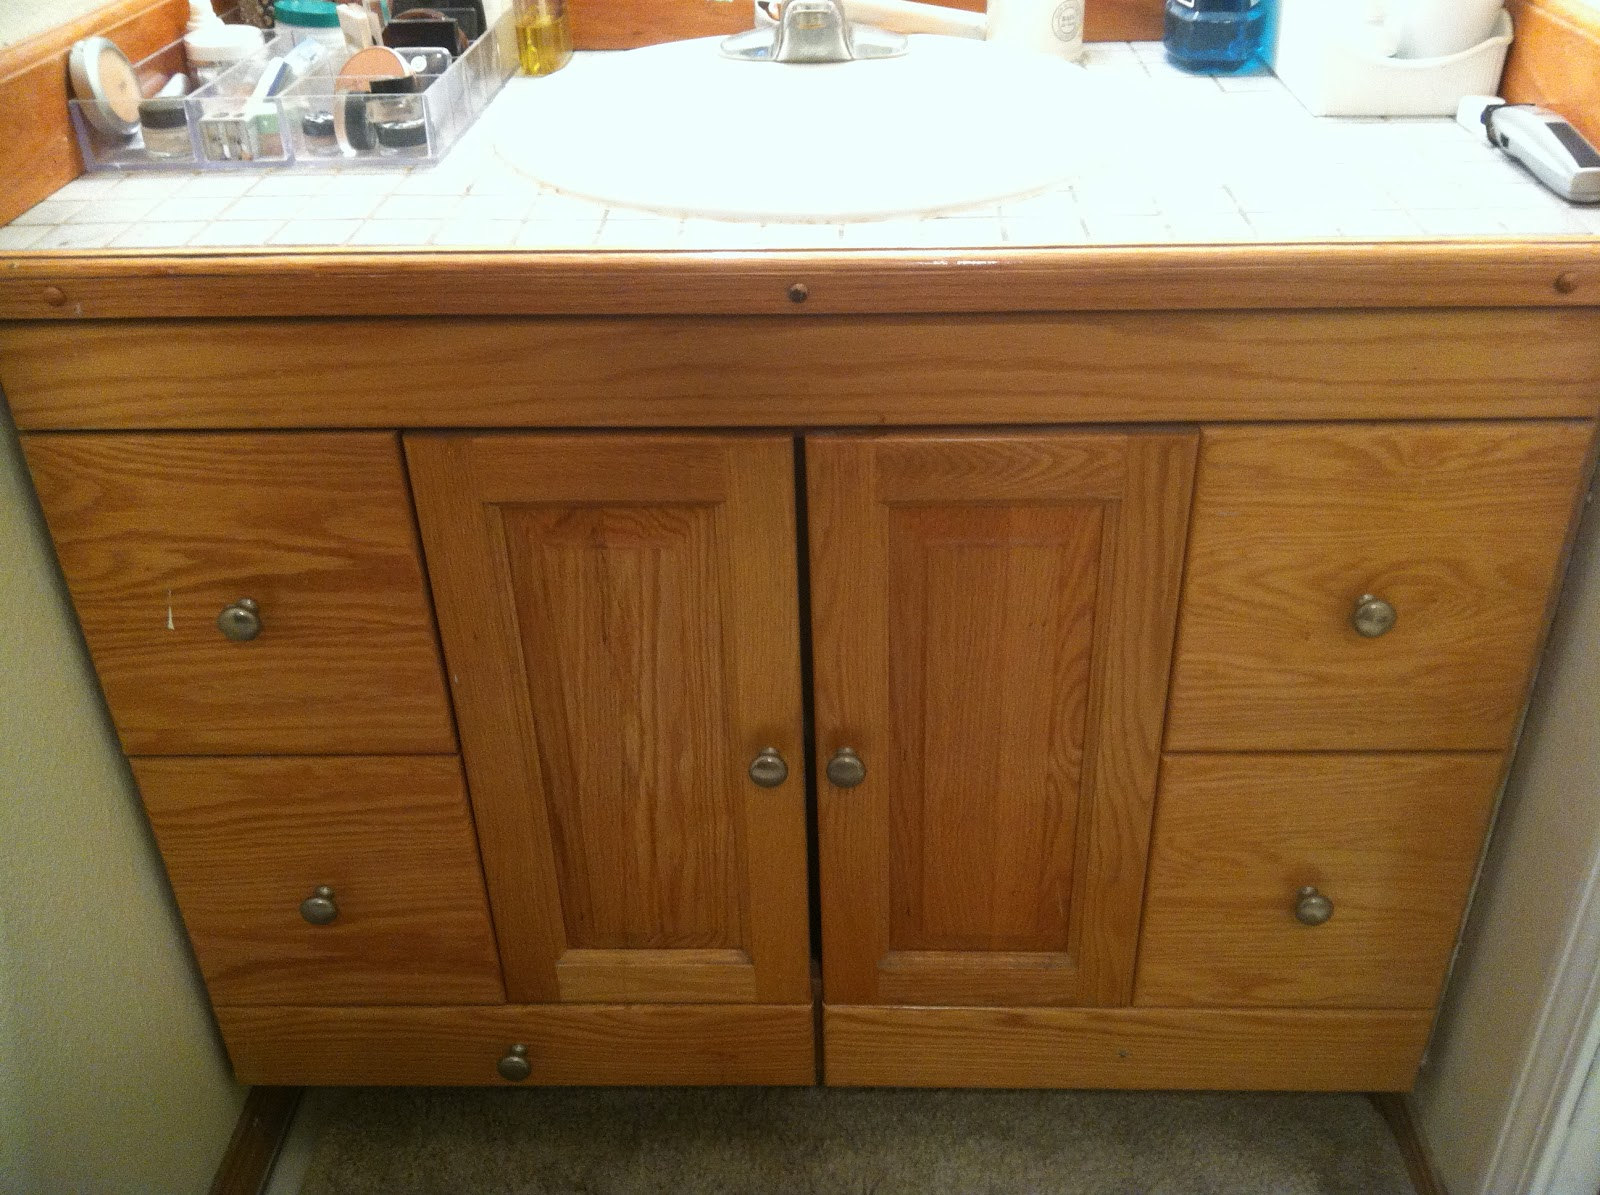 Bathroom Vanity Re Design For Under $60! Staining Oak Cabinets Espresso